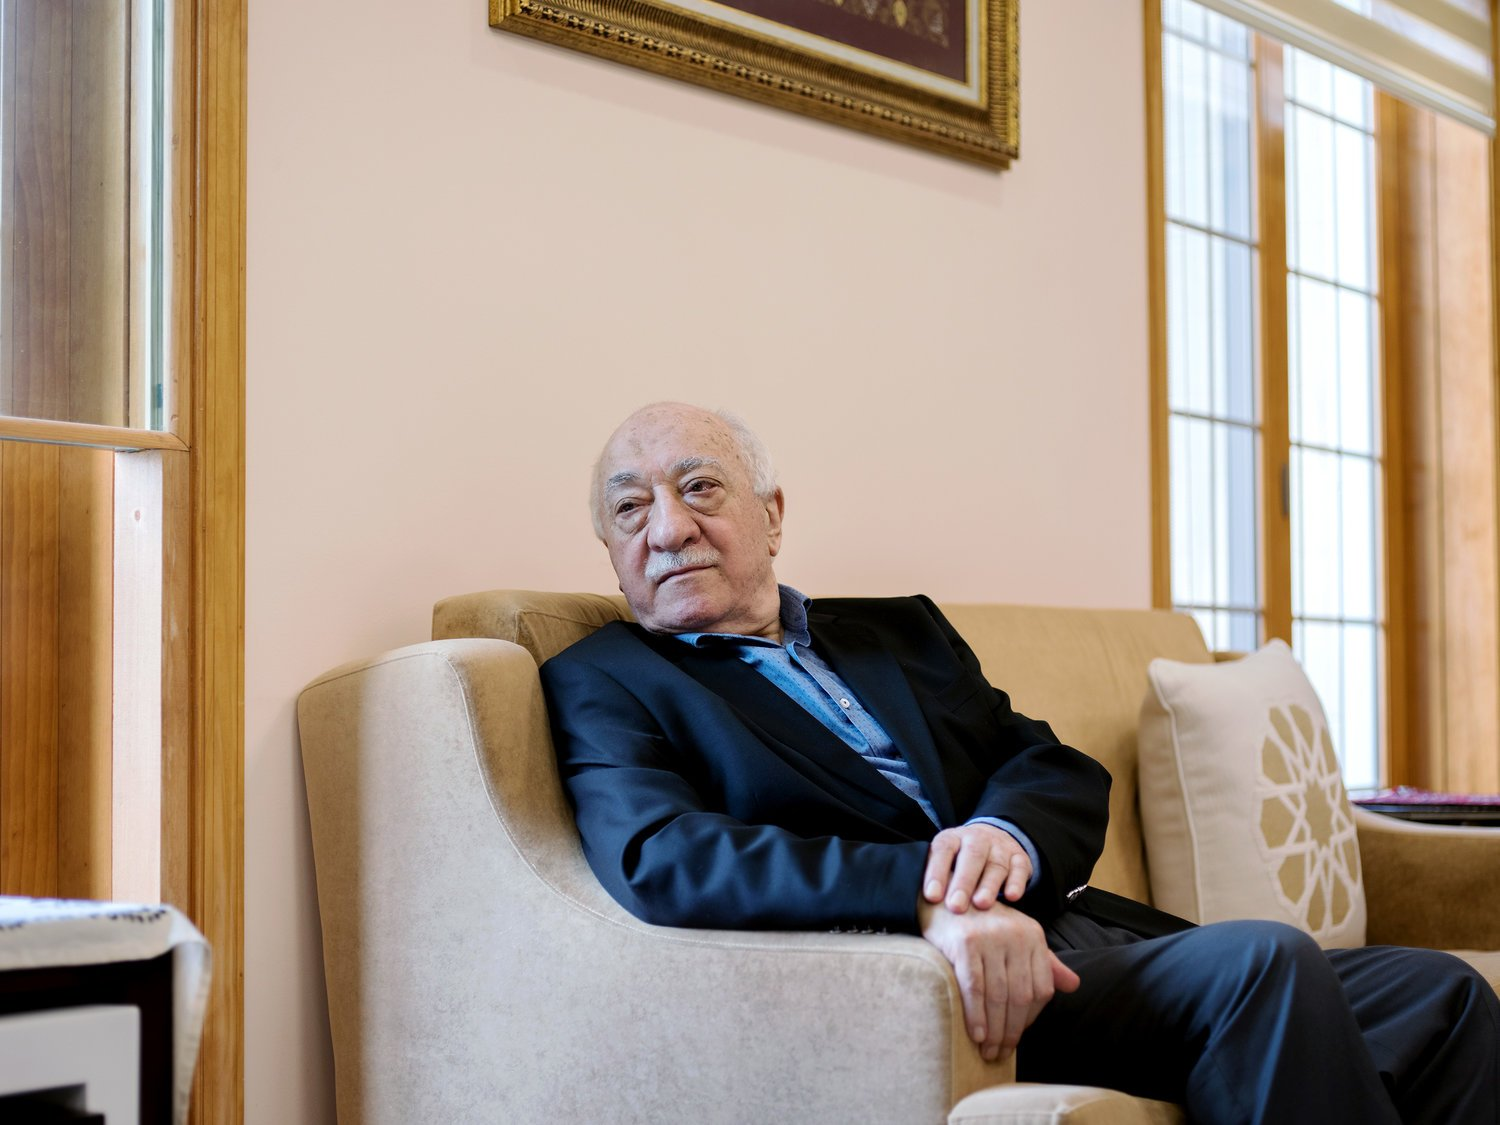 Fethullah Gulen sits in a room at his compound in Saylorsburg, Pennsylvania. He has lived in exile in the United States since the late 1990s. Turkish President Recep Tayyip Erdogan blames Gulen for last year's failed coup and is seeking his extradition. Bryan Thomas for NPR